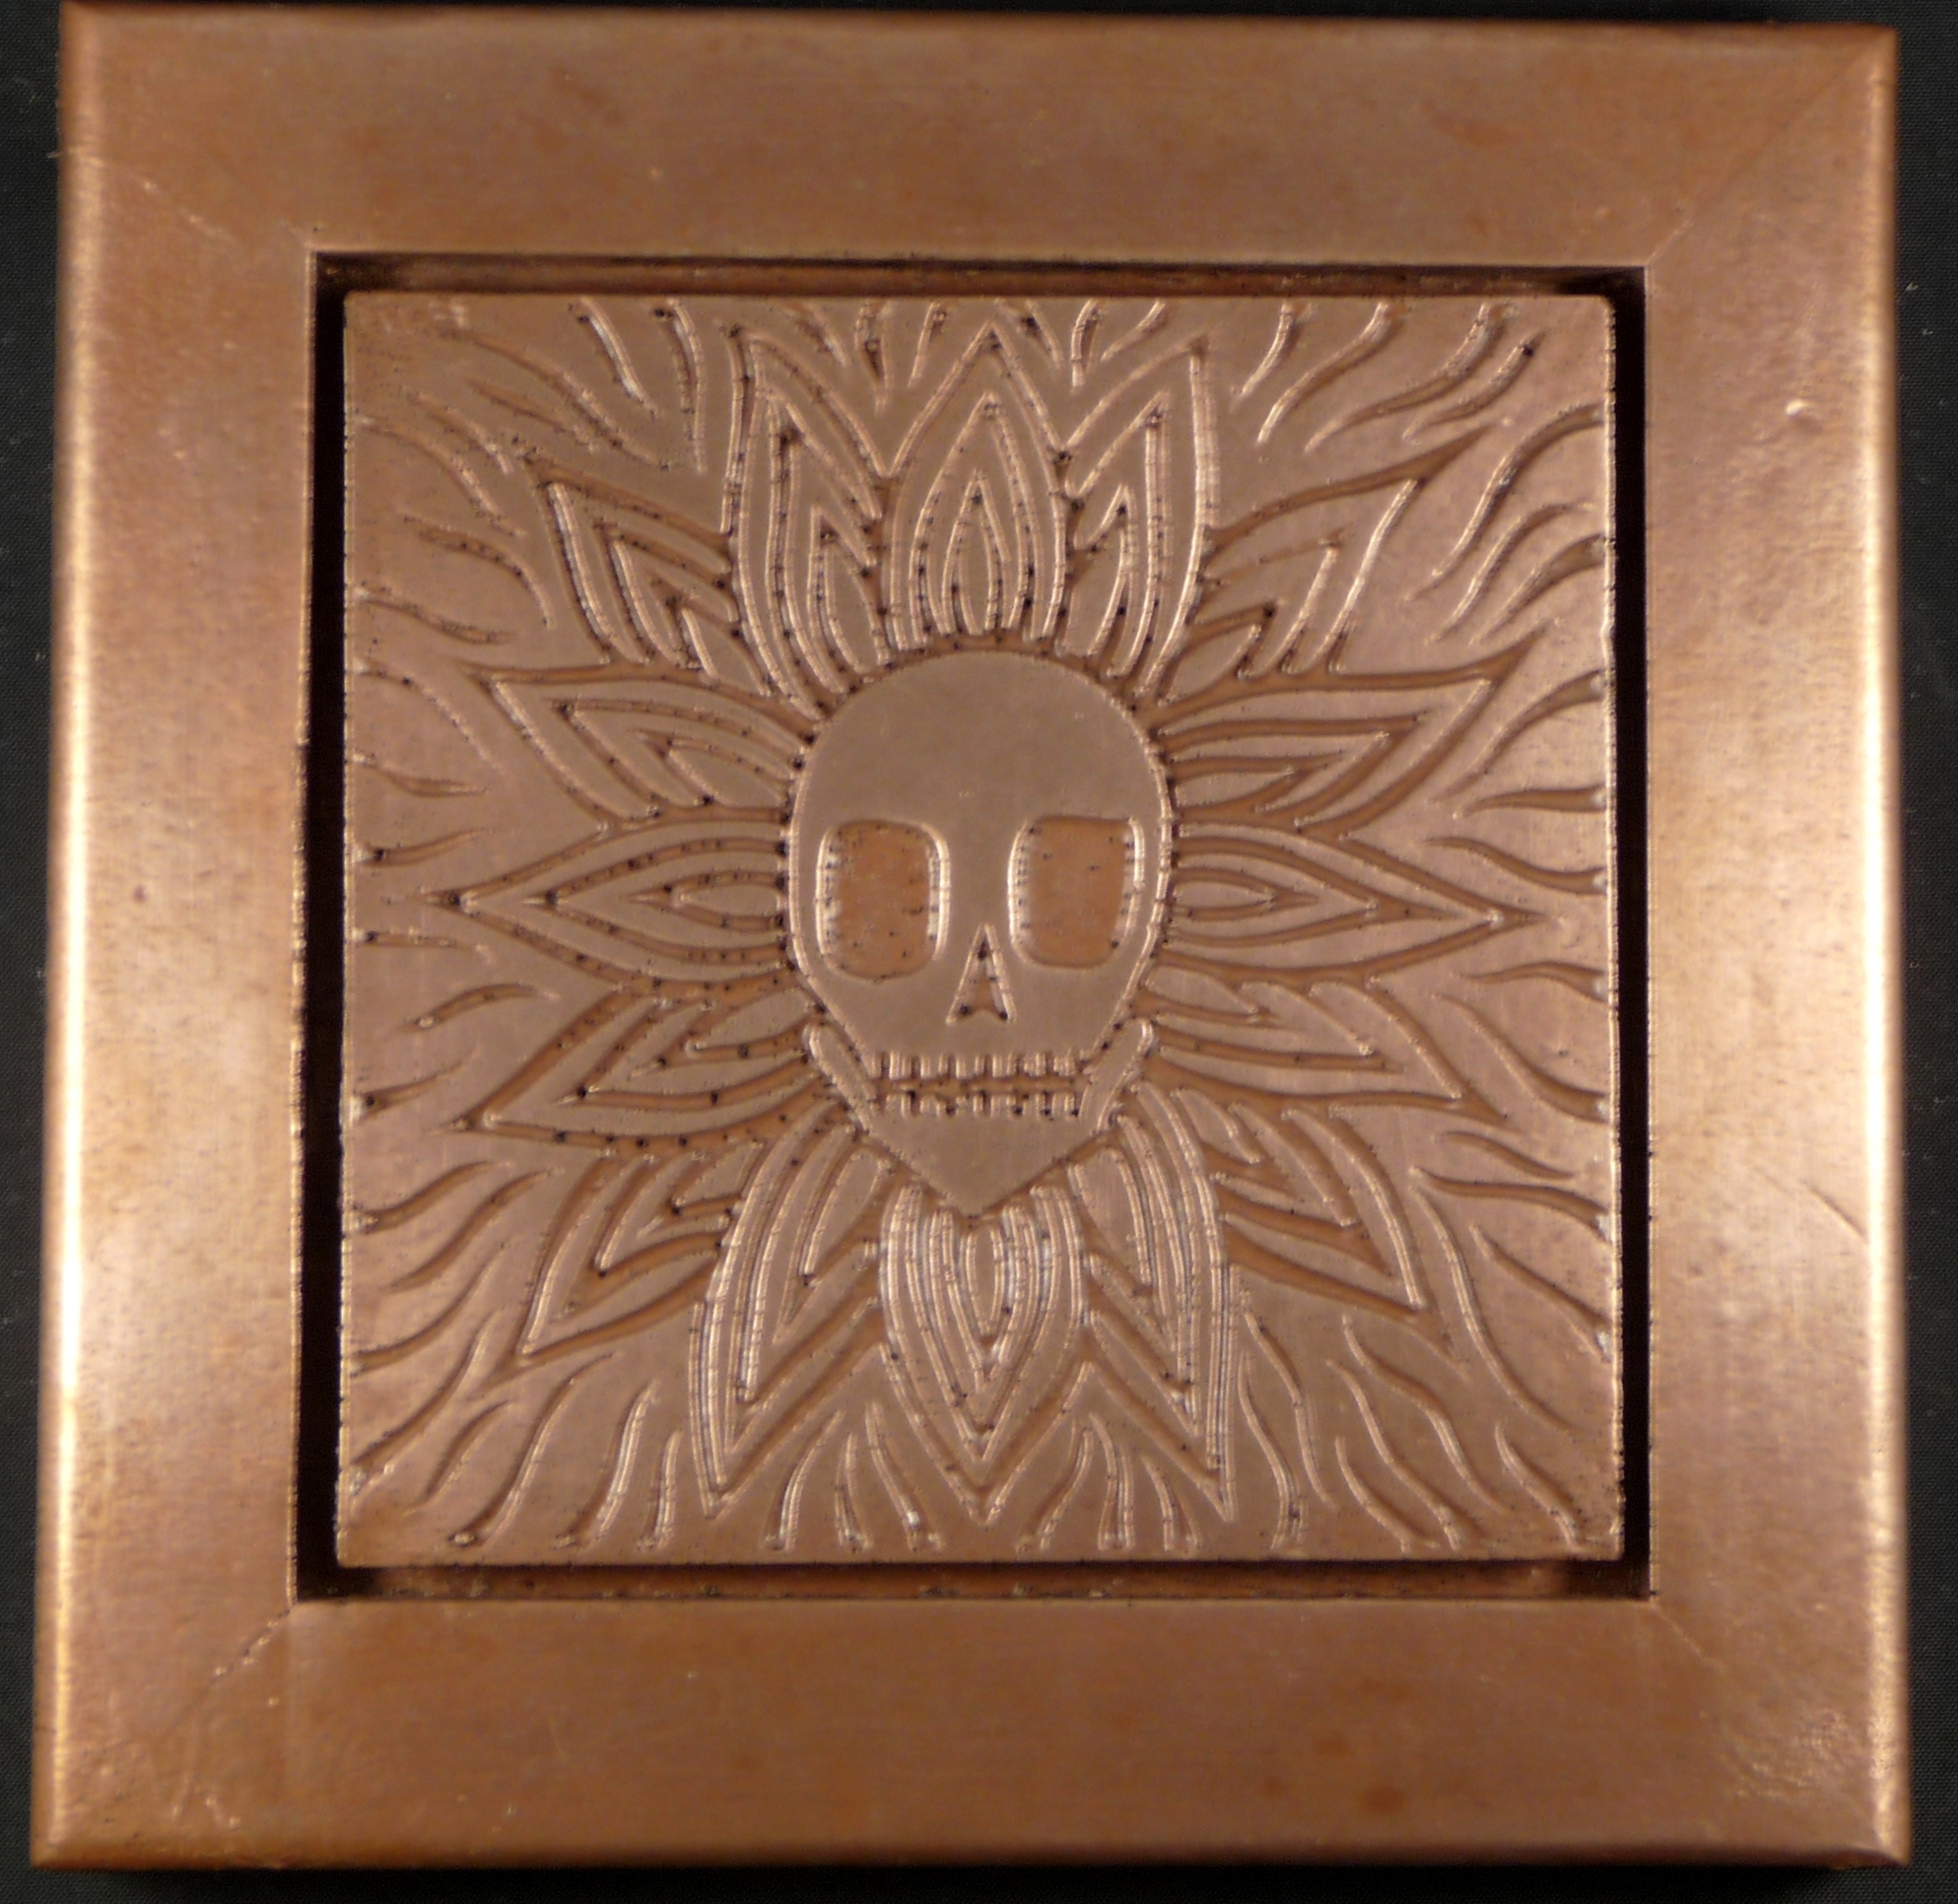 Copper Tile Wall Decor | Pacifica Tile Art Studio within Copper Wall Art (Image 8 of 20)